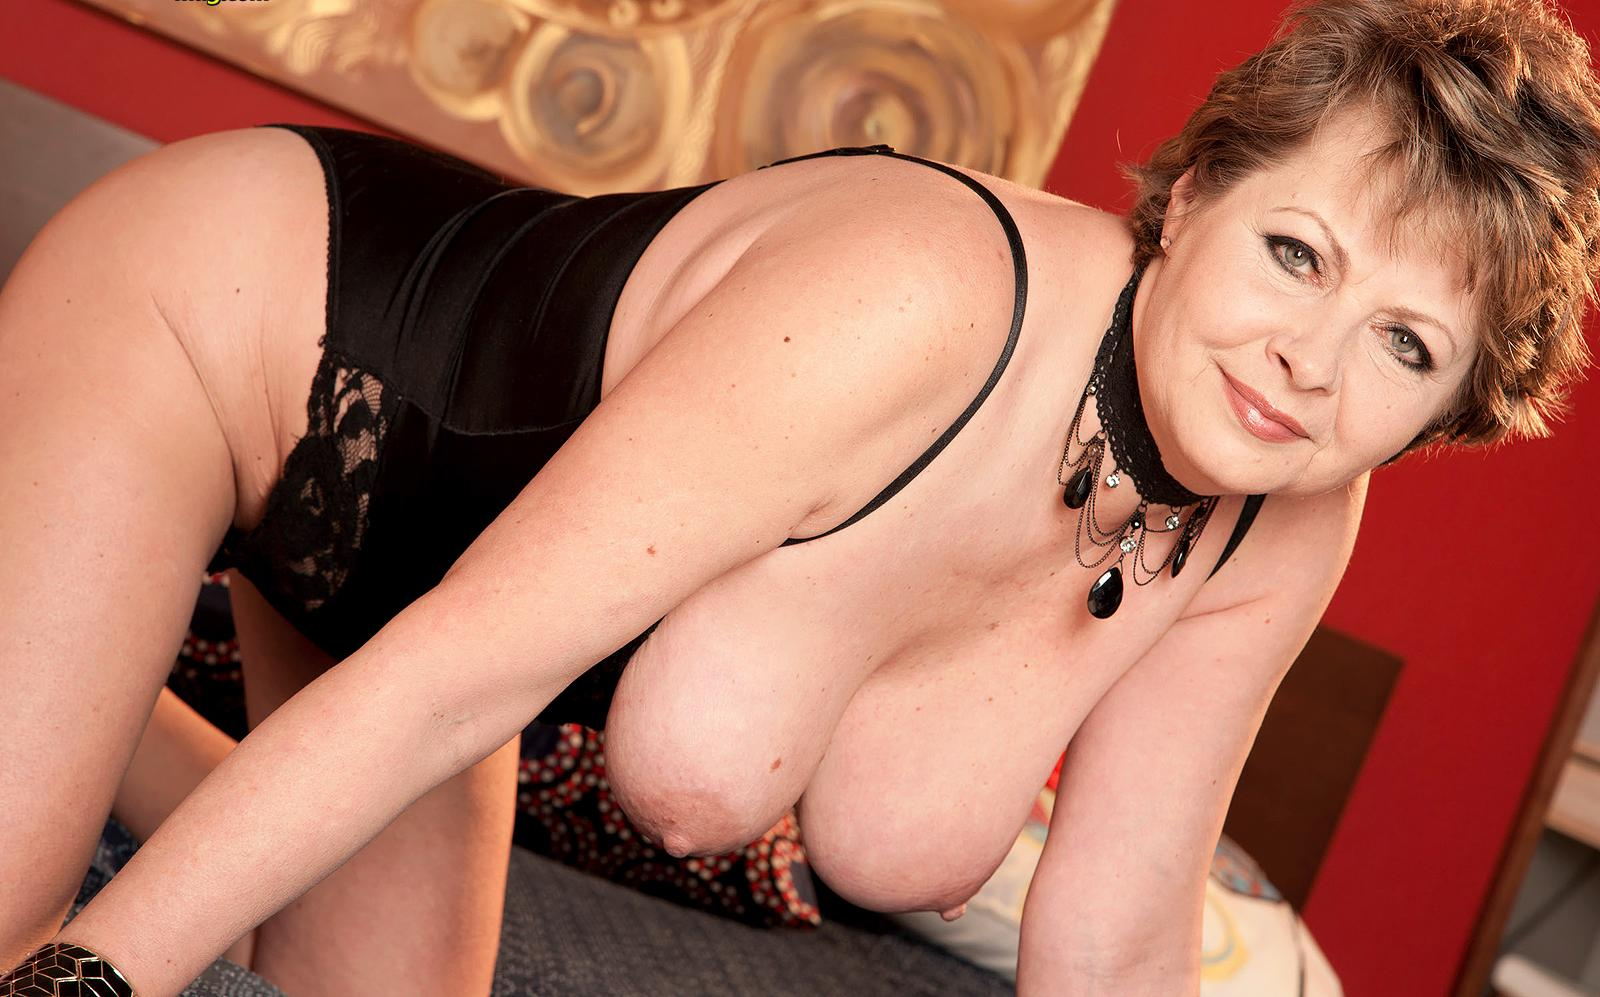 Serena a 67 old retired FLASHING GRANNY is doing a hot striptease